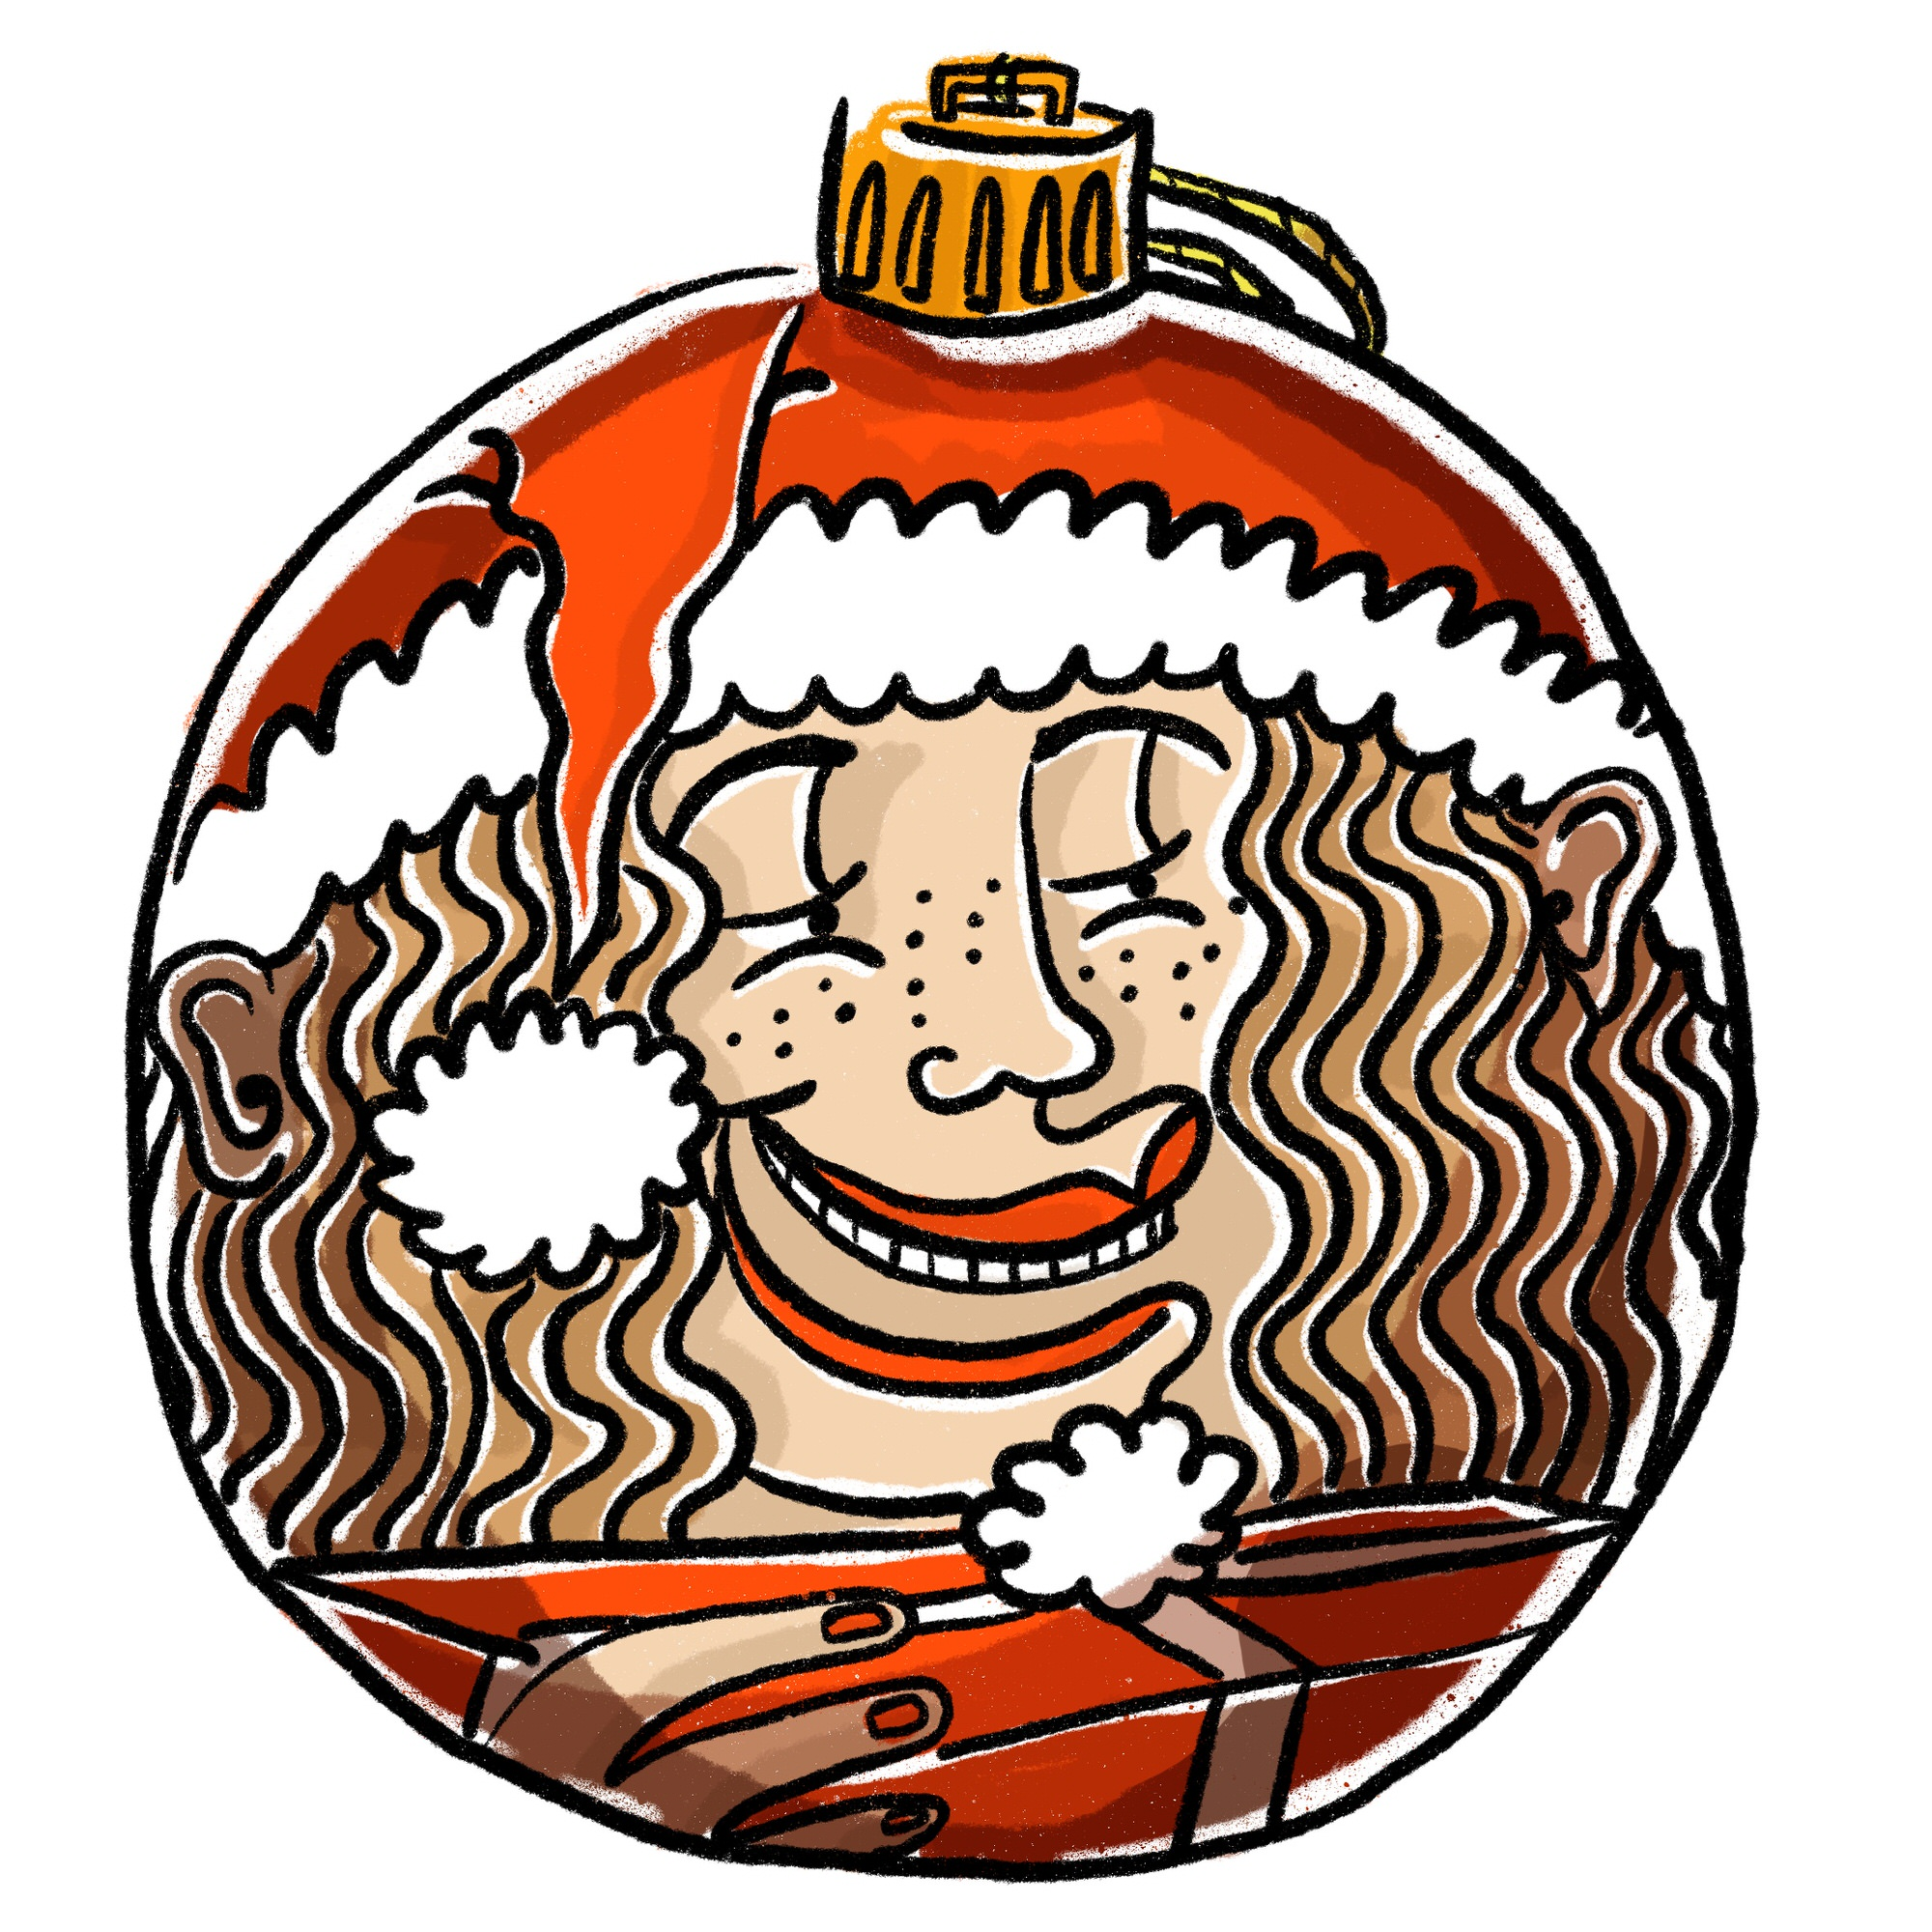 A comic style Christmas bobble reflects Ida grinning holding a large present. The background is white | ©Ida Henrich